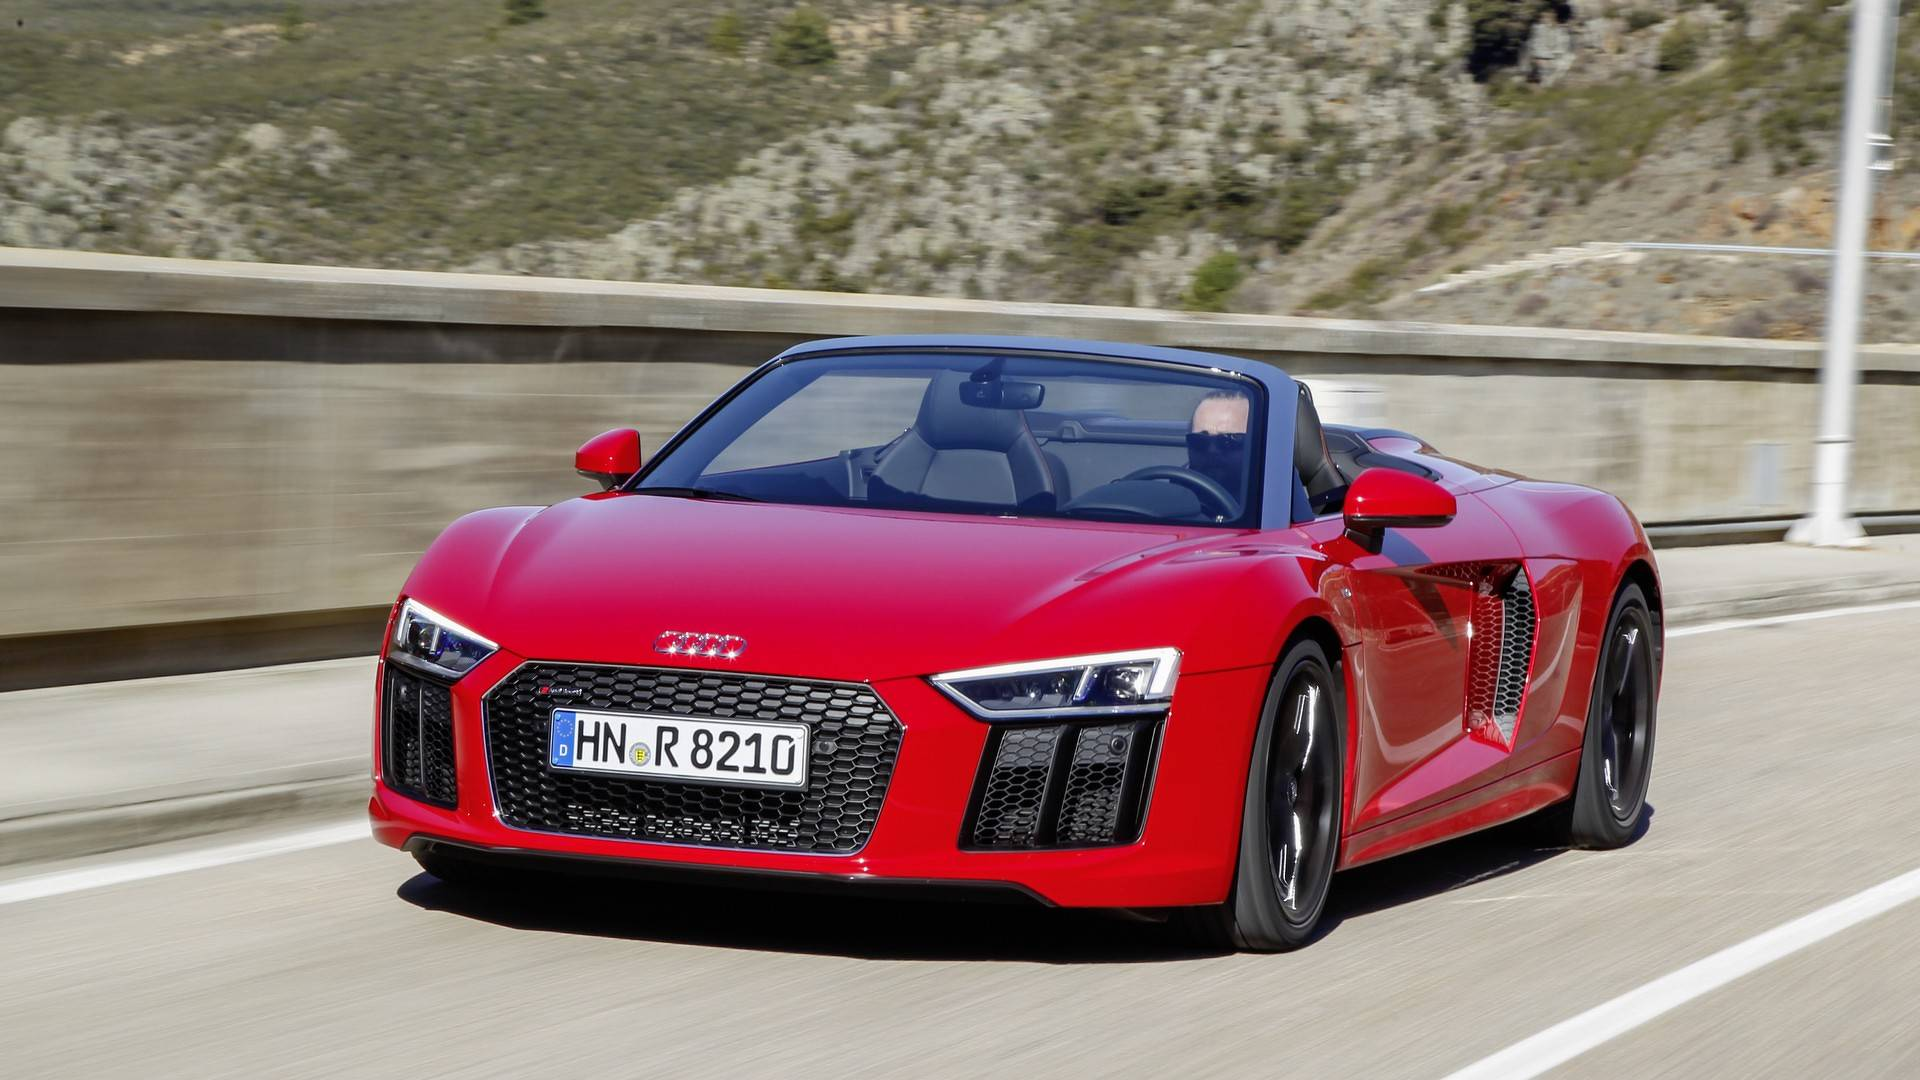 Rear-Wheel-Drive Audi R8 Coming To United States, EPA Listing Suggests